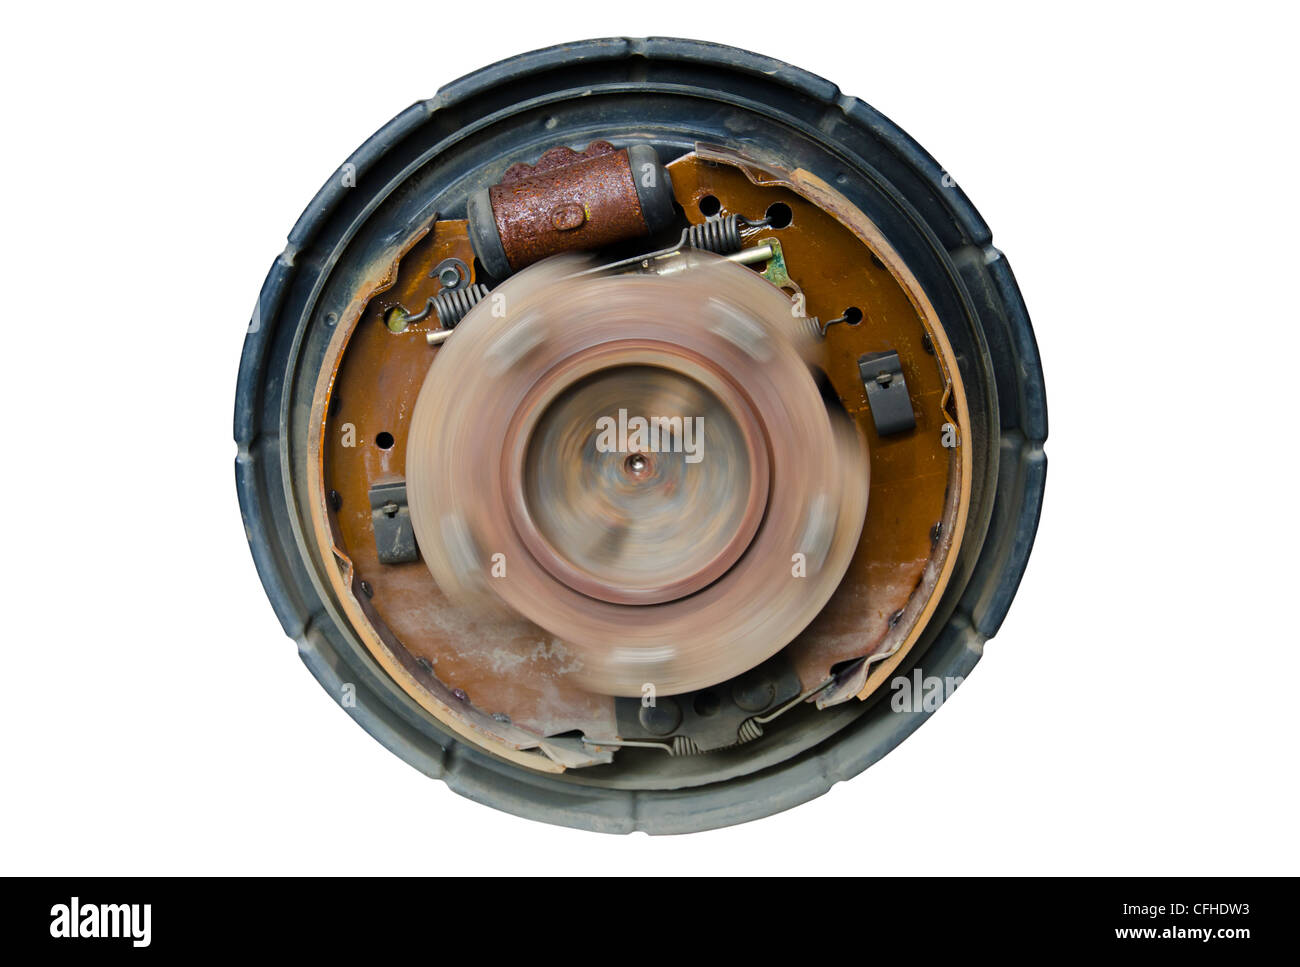 Drum Brakes Stock Photos & Drum Brakes Stock Images - Alamy